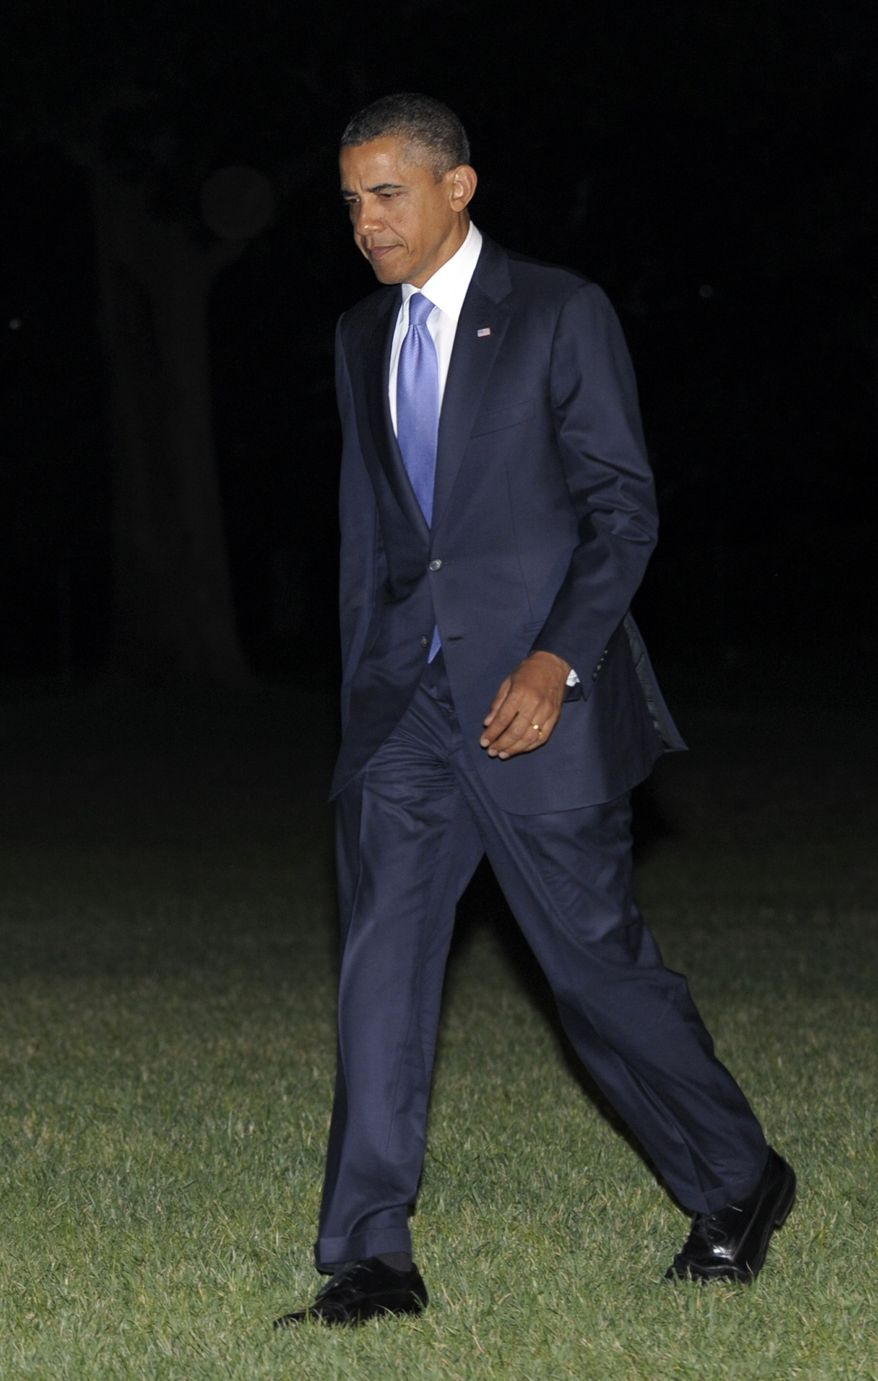 President Barack Obama walks off of Marine One on the South Lawn of the White House in Washington, Thursday, June 30, 2011, after returning from fundraising in Philadelphia. (AP Photo/Susan Walsh)